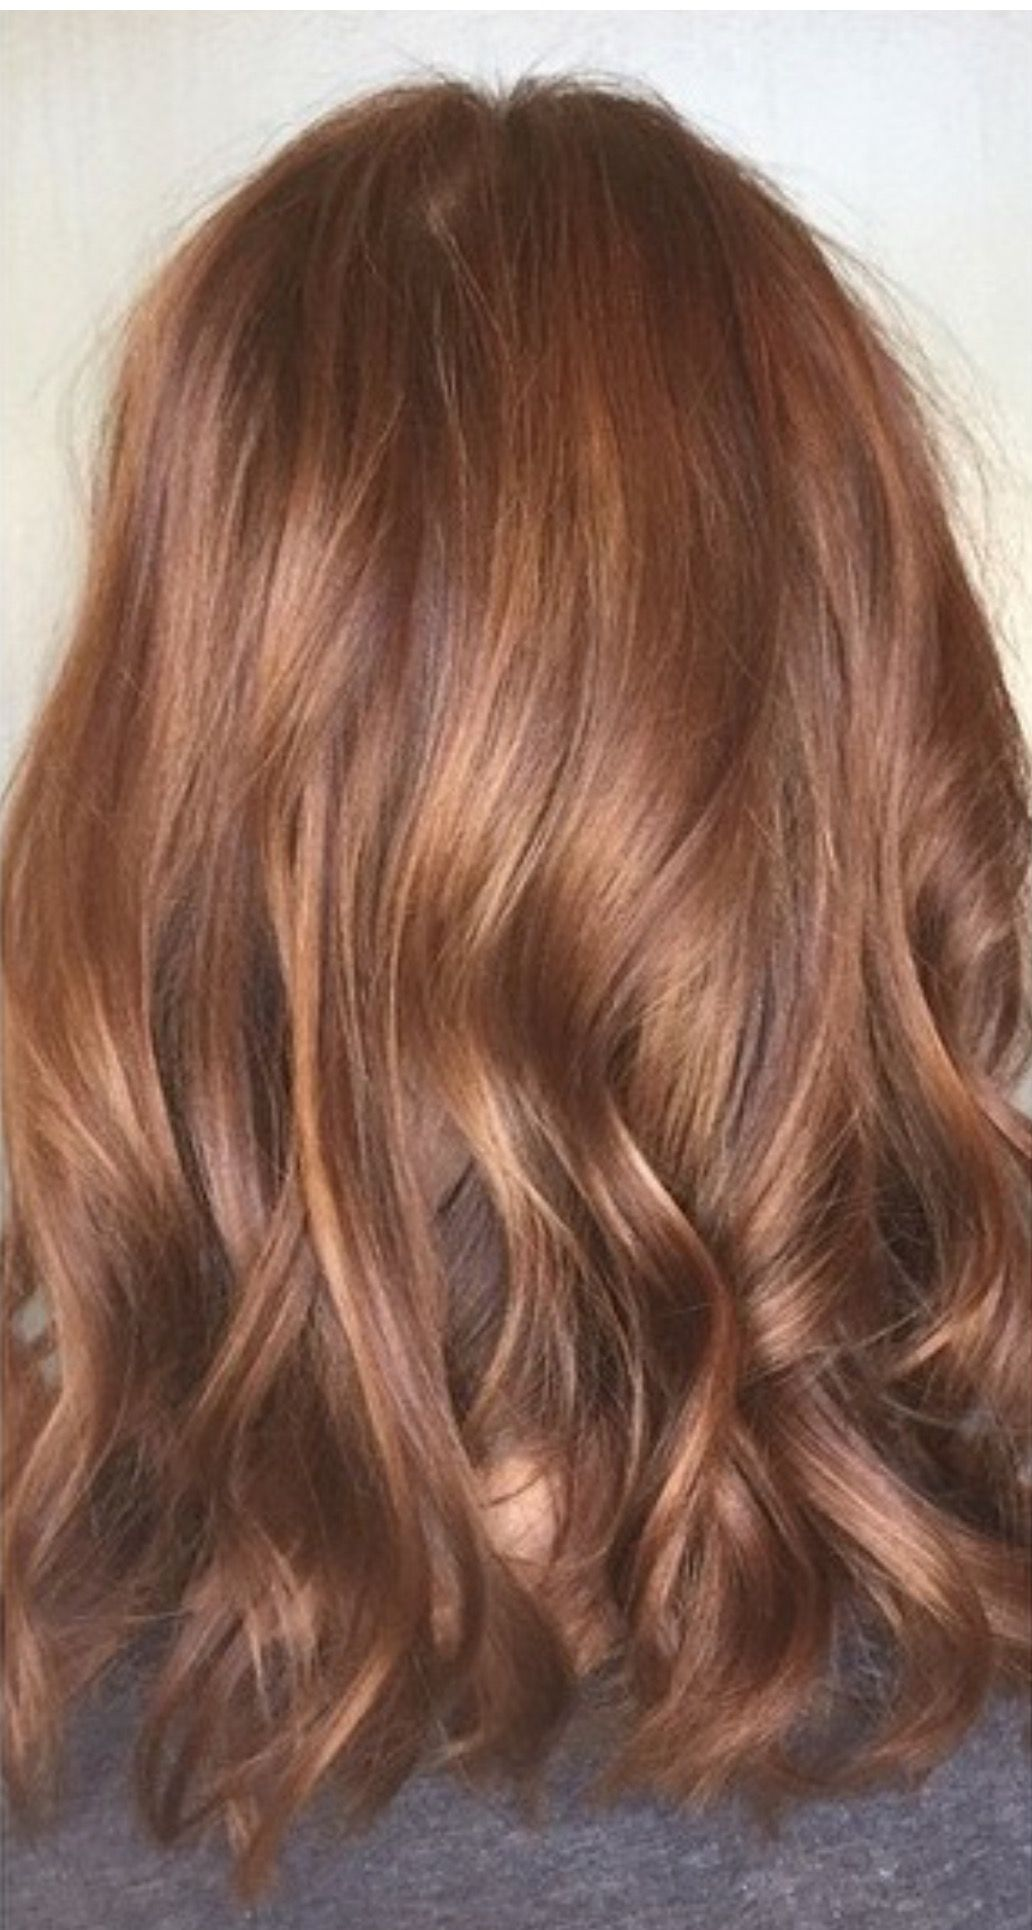 auburn coppertone fall hair color hair do 39 s pinterest braune haare lange haare und haar. Black Bedroom Furniture Sets. Home Design Ideas